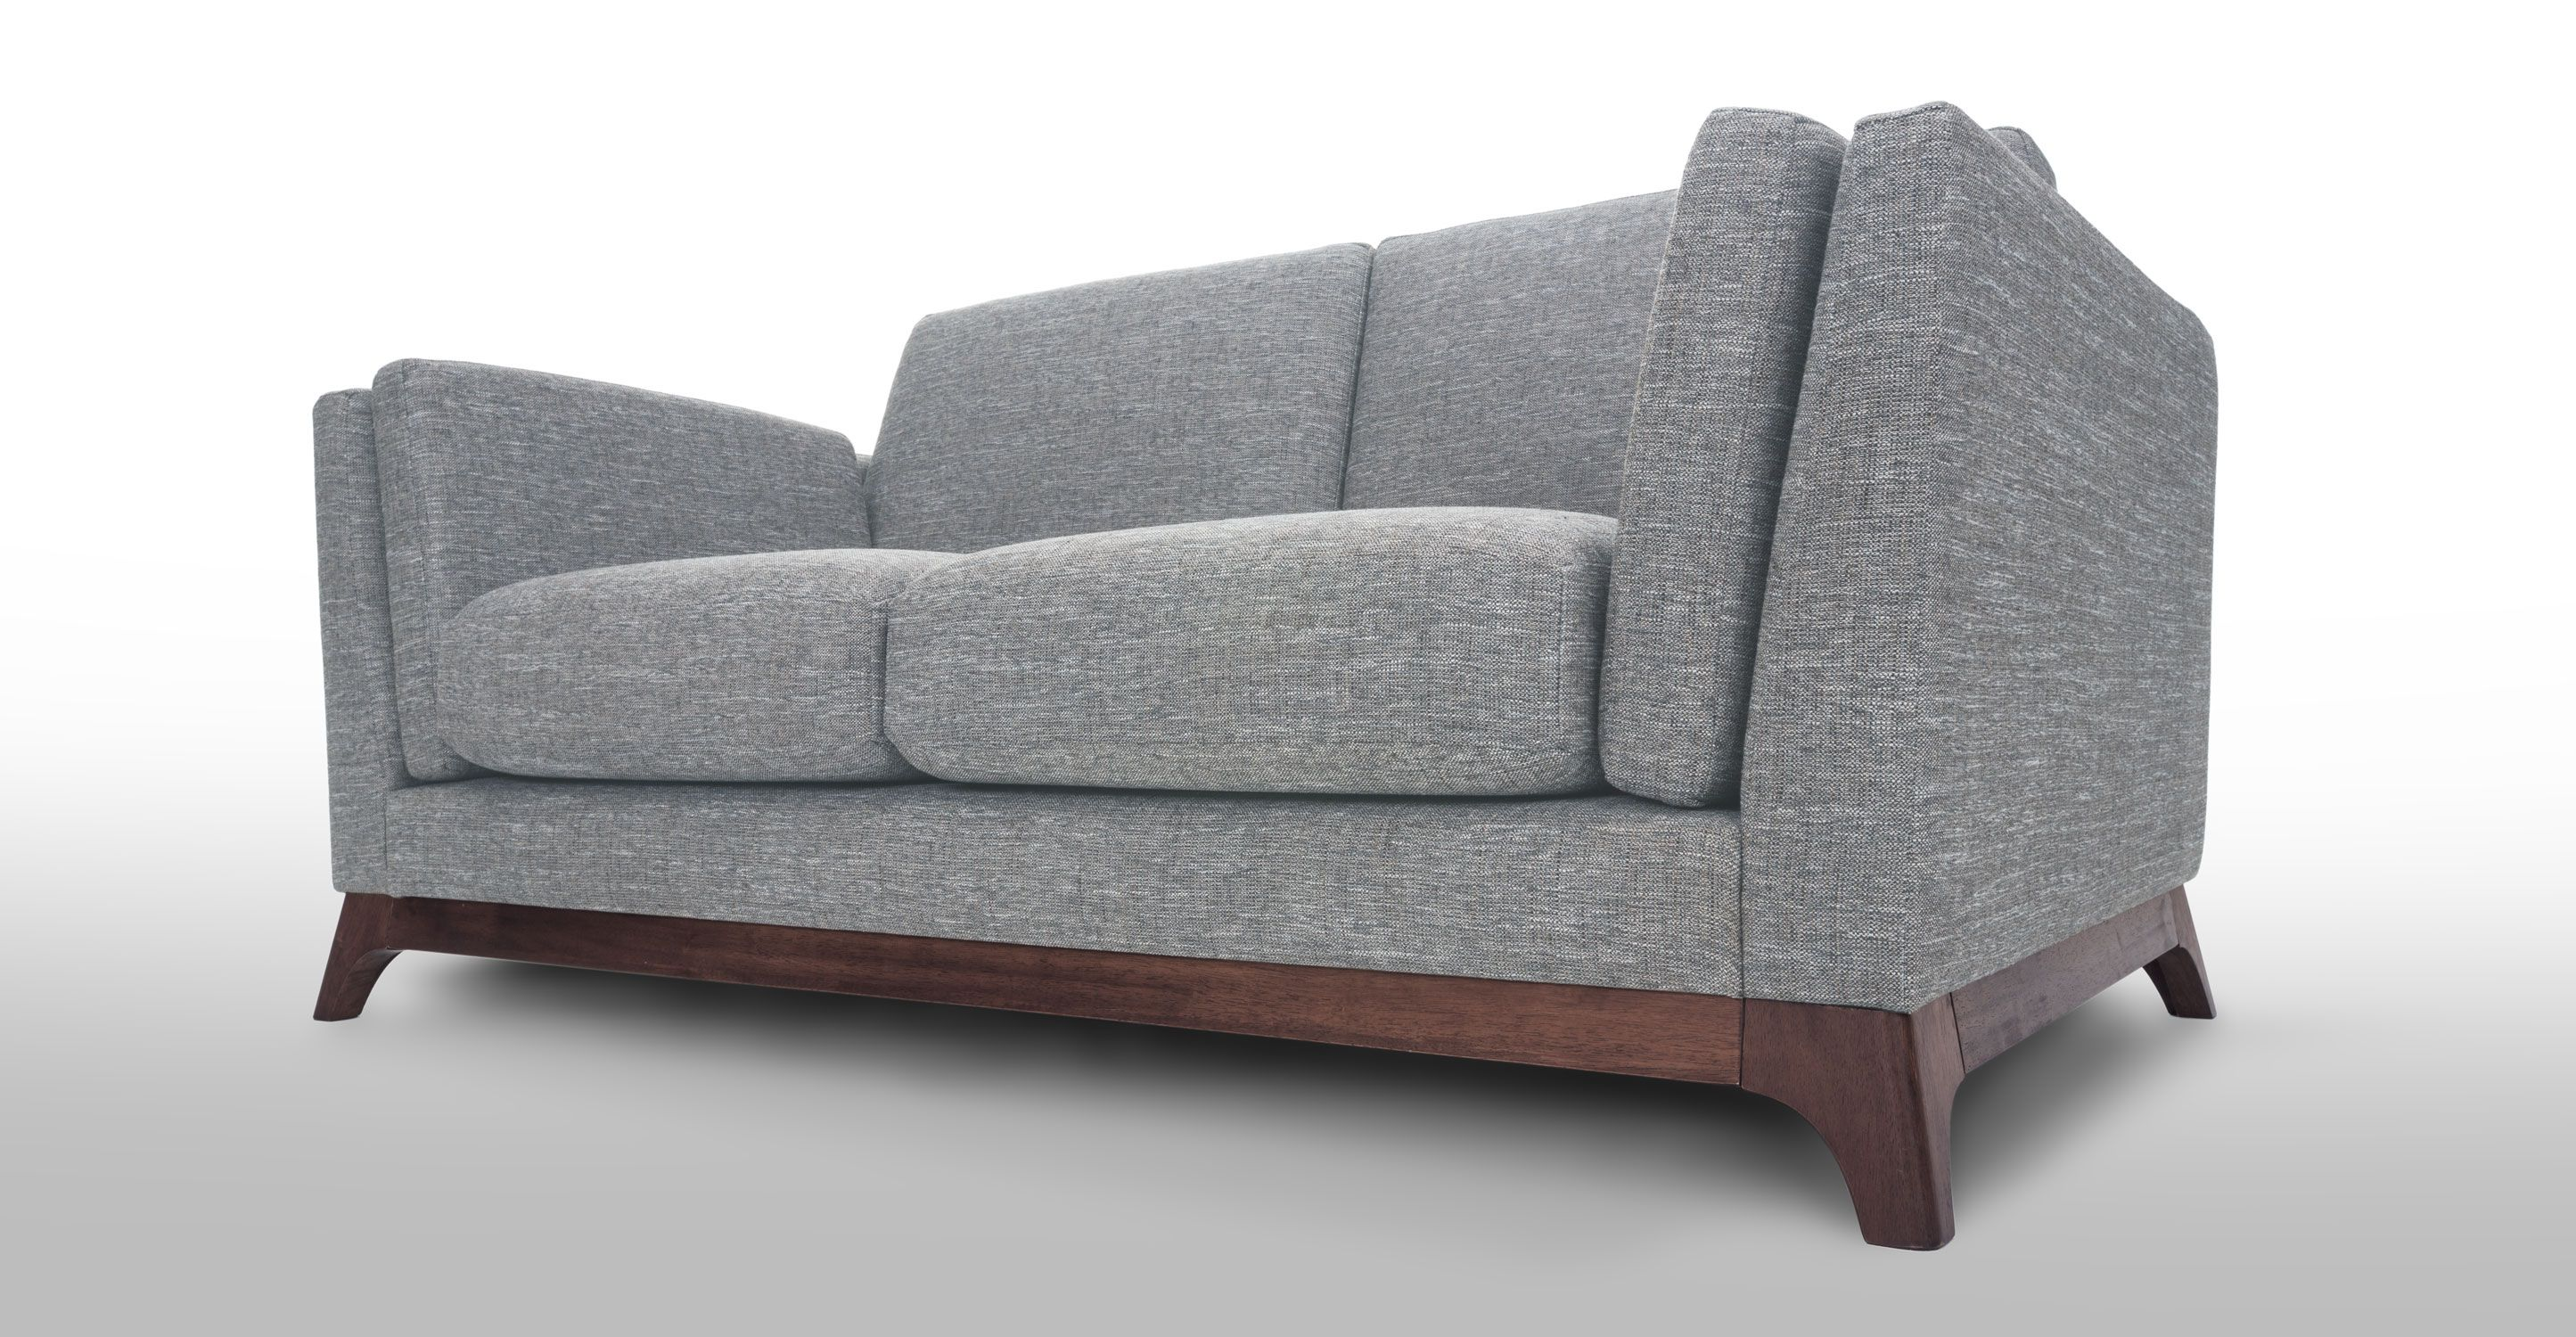 Gray Mid Century Modern Loveseat Ceni Mid Century Modern Furniture Scandinavian Furniture